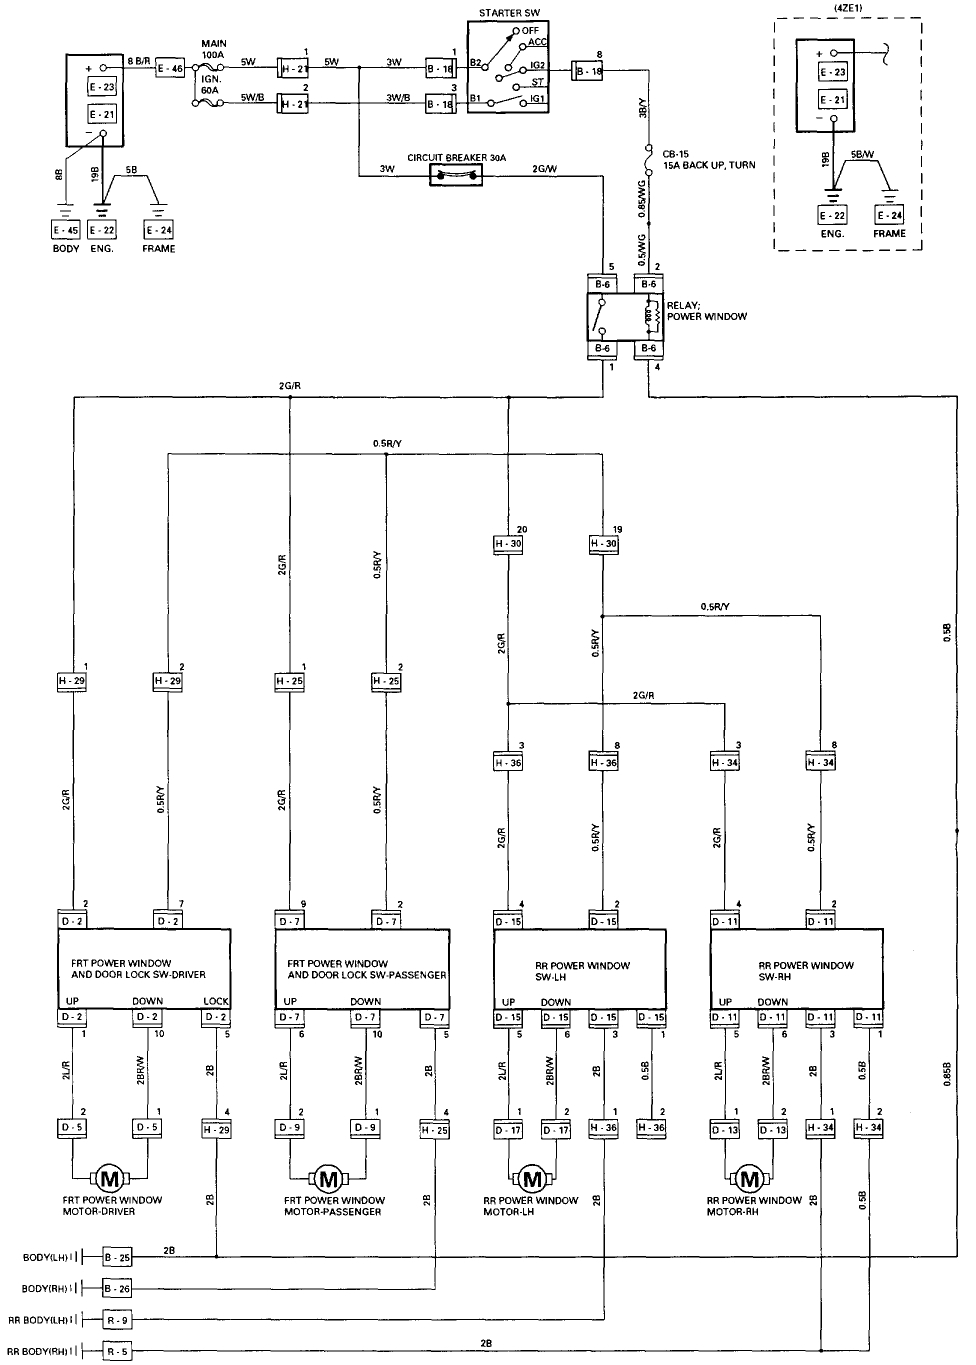 5 Pin Power Window Switch Wiring Diagram from static-cdn.imageservice.cloud